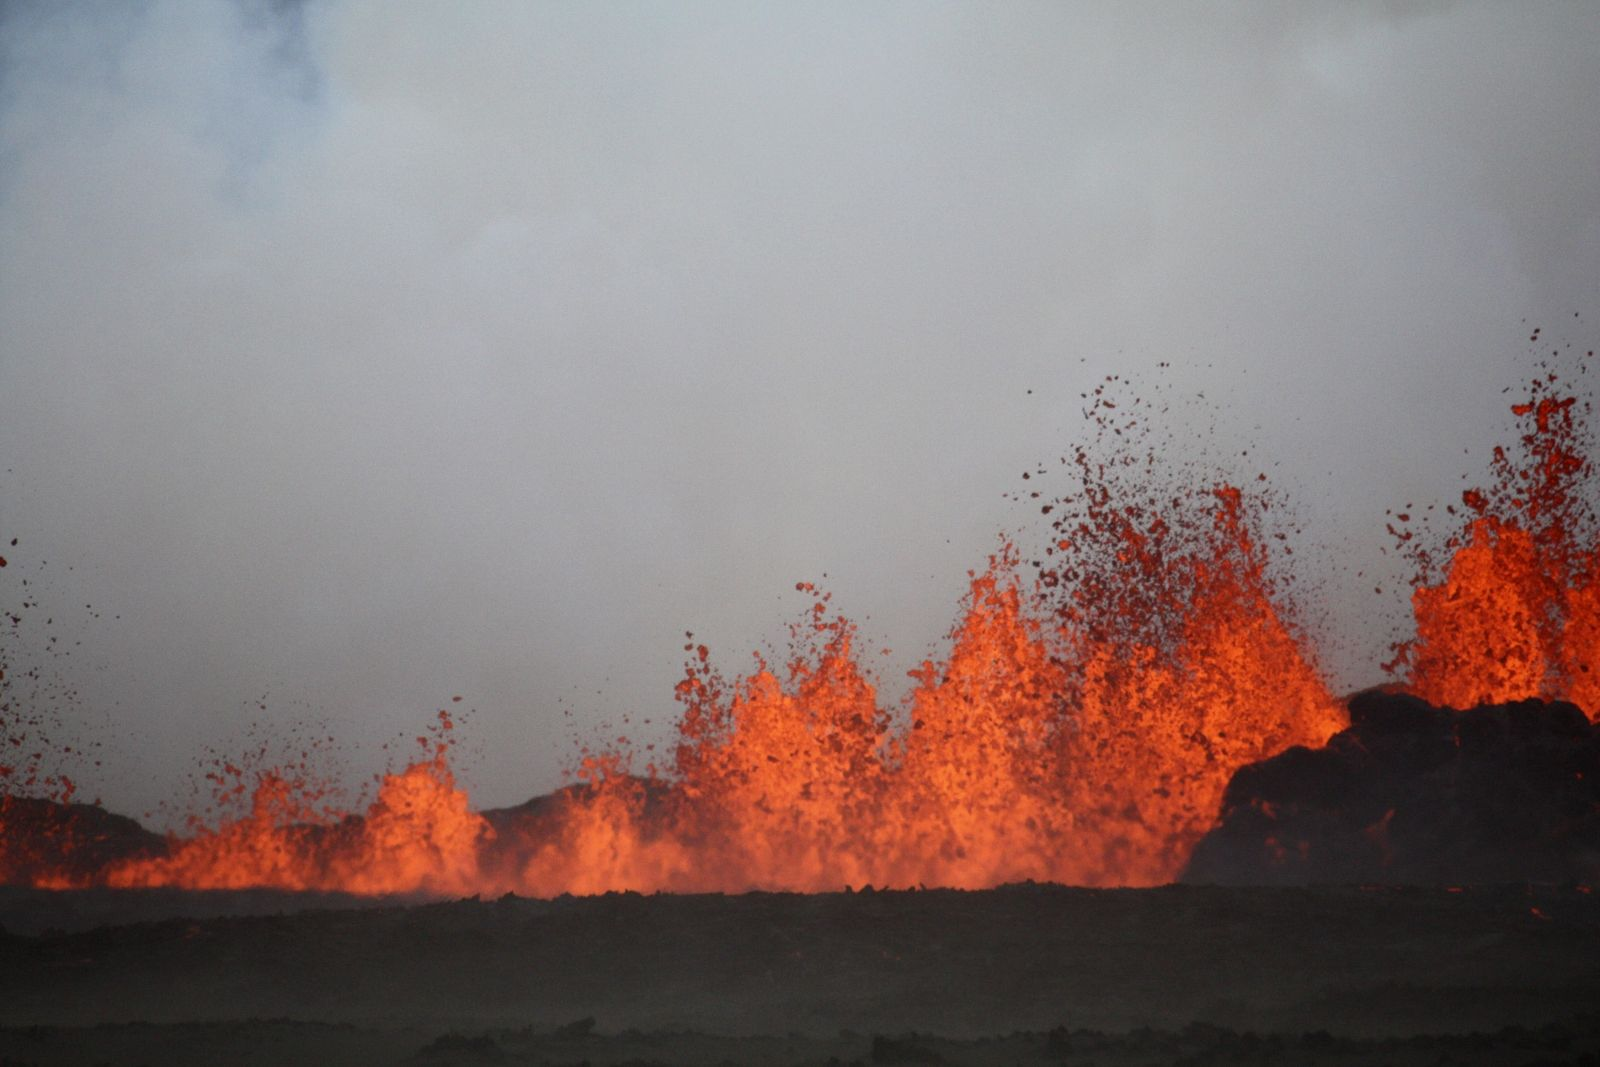 Iceland's Bardarbunga Volcano: Quadcopter Drone Captures Incredible Close-Up Footage of Eruption - INTERNATIONAL BUSINESS TIMES #Volcano, #Eruption, #Volcano